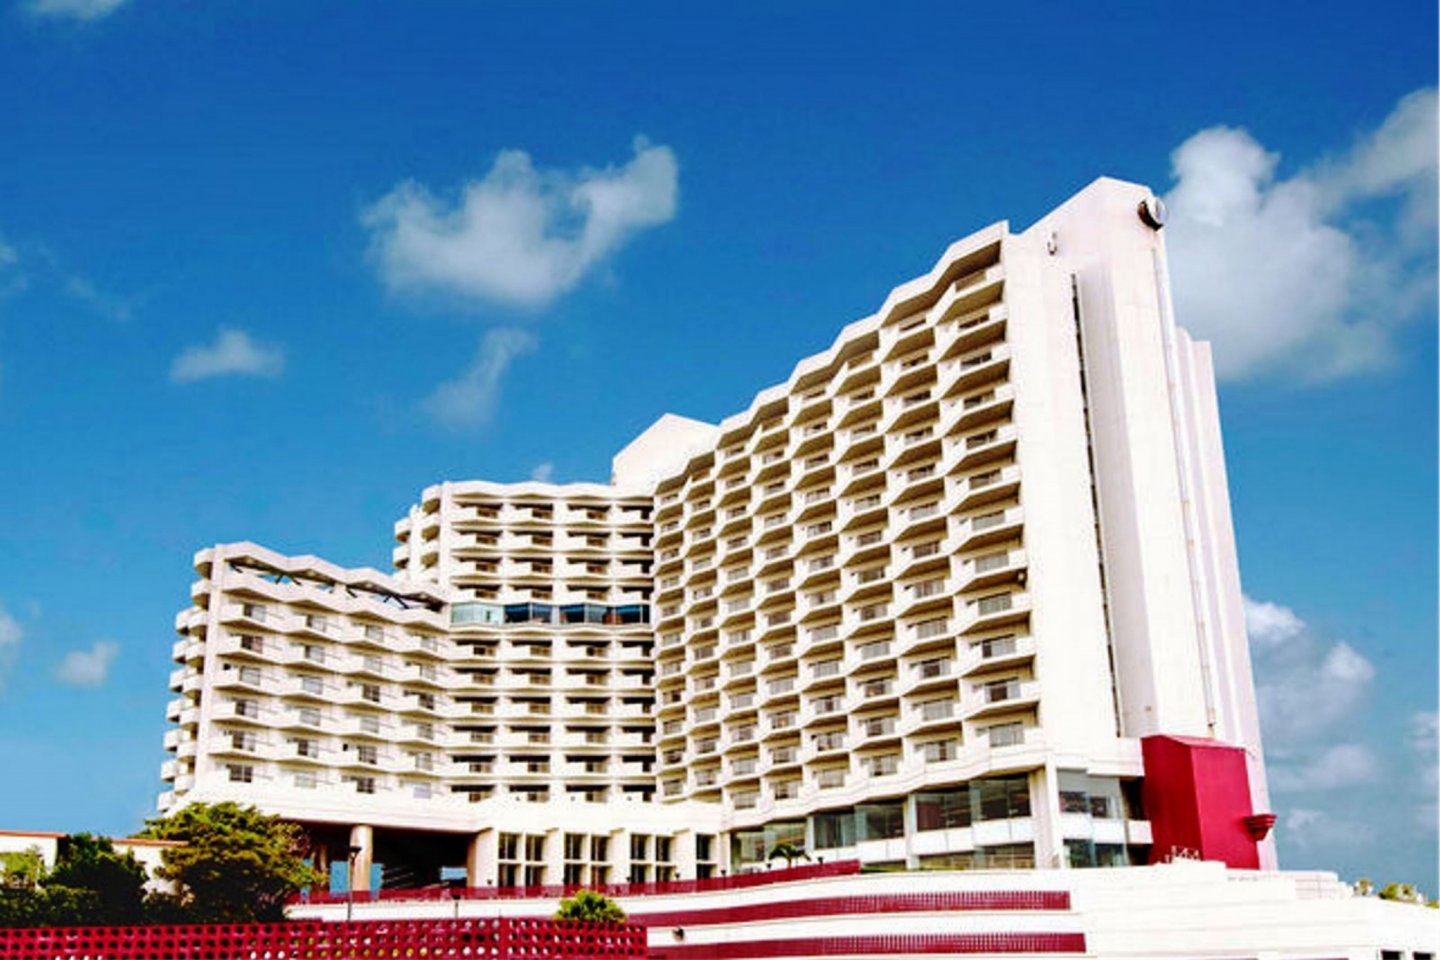 Okinawa Grand Mer Resort is perched on a hill overlooking Nakagususuku Bay